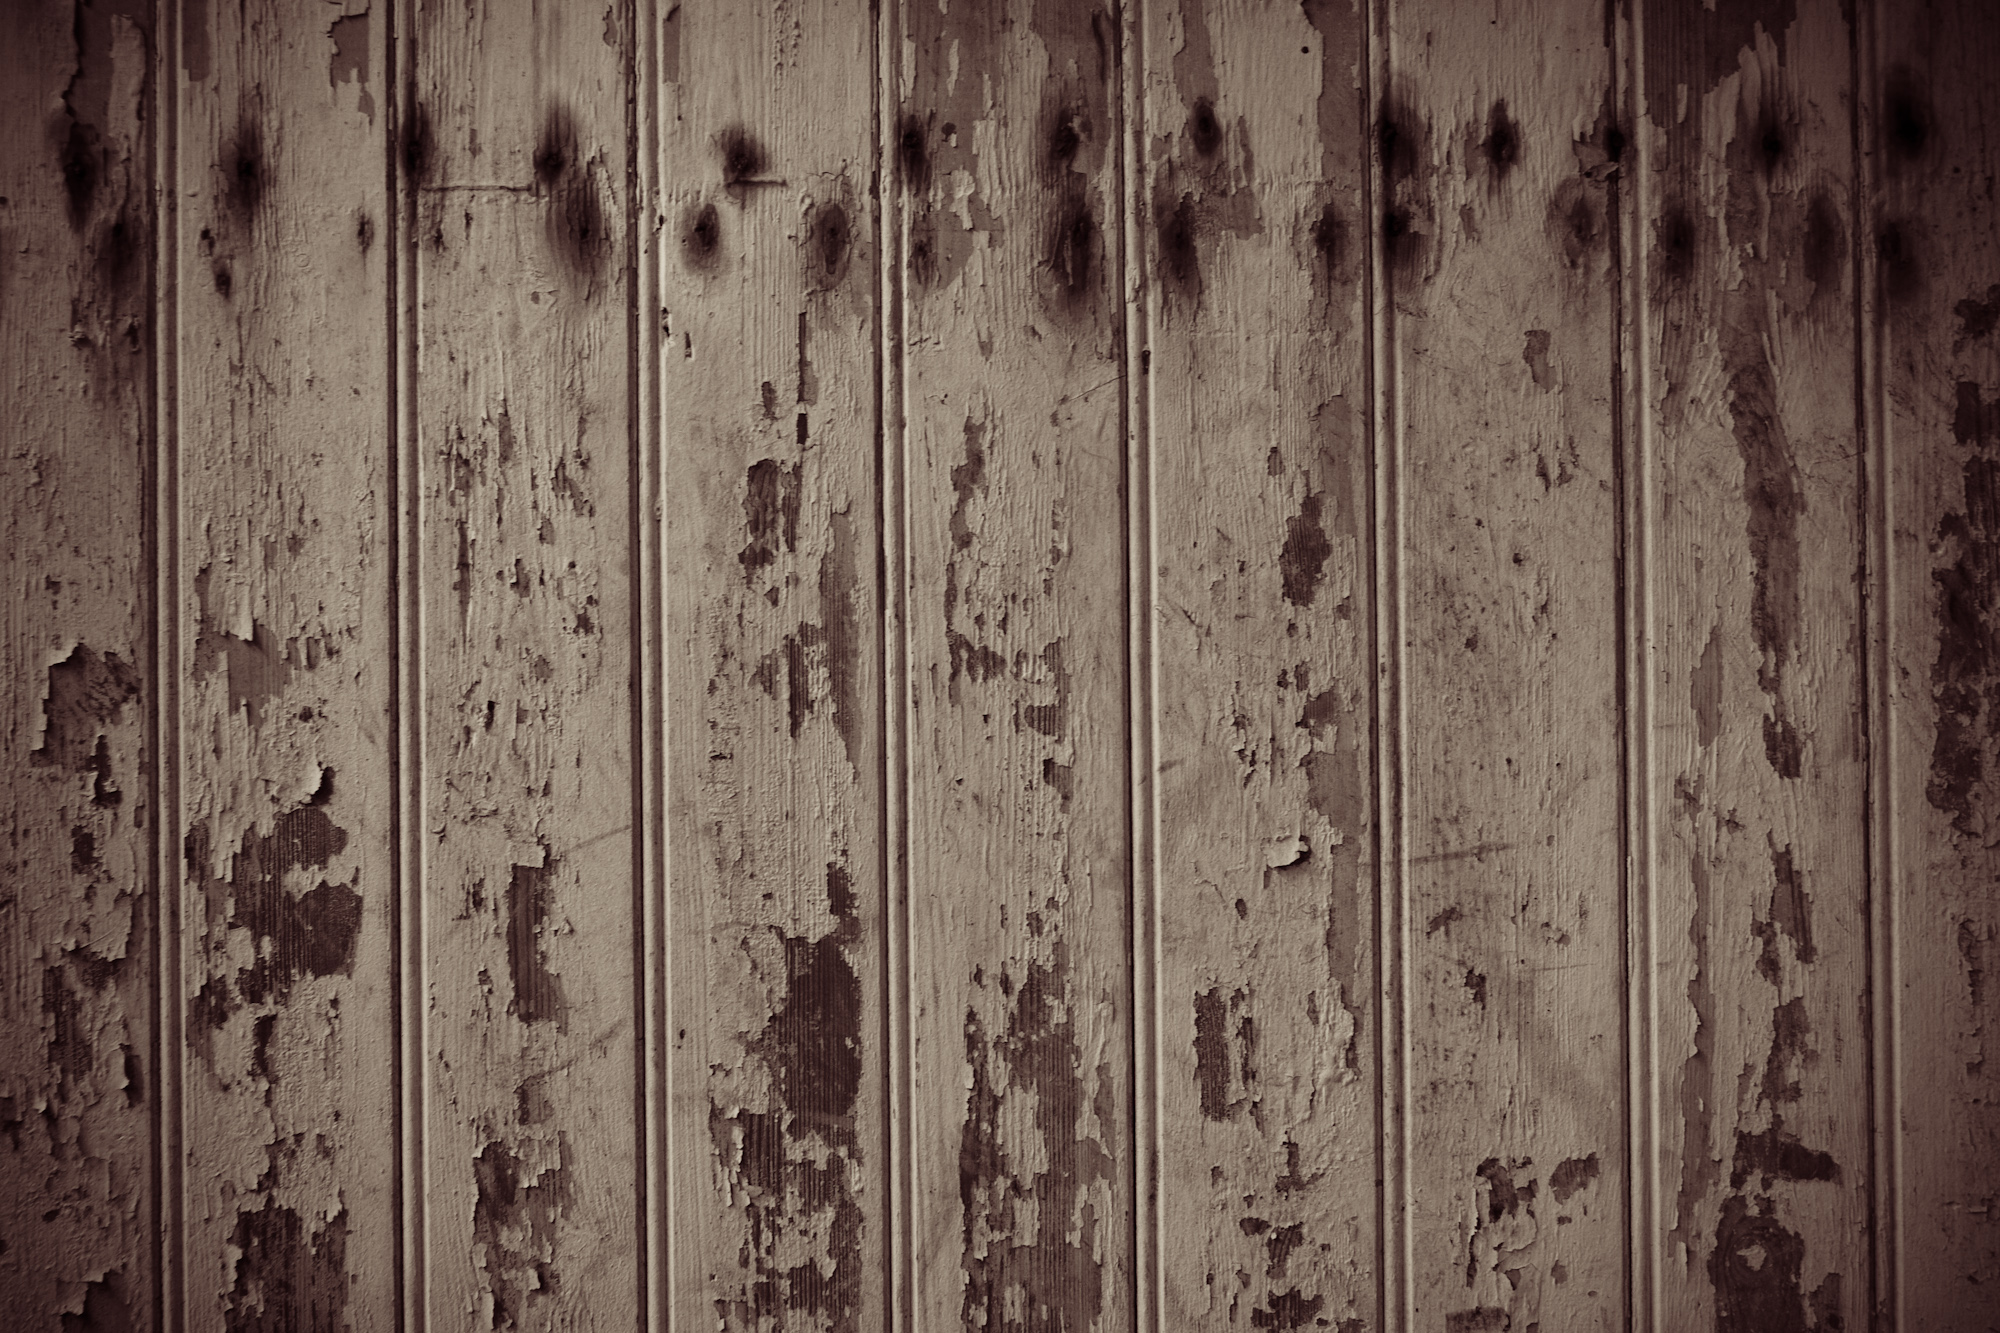 Old worn wooden panels photo